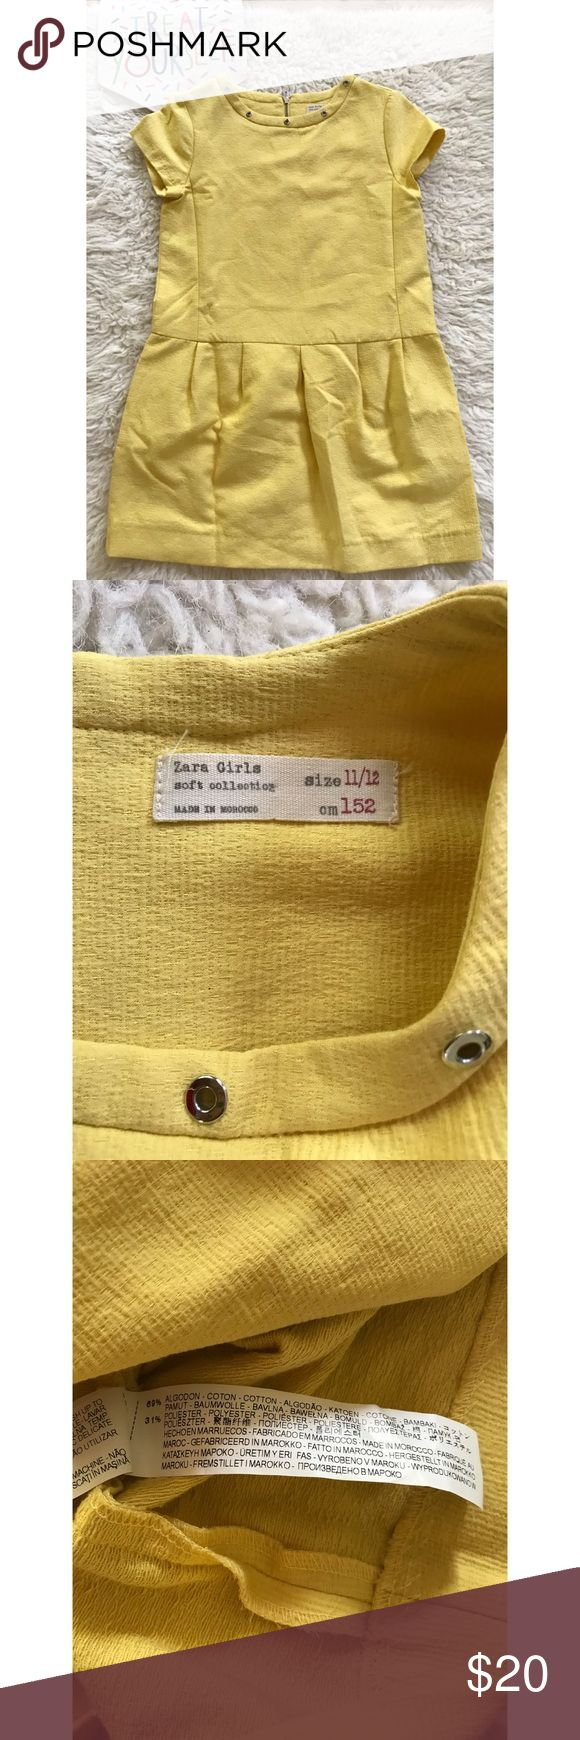 """Zara Girls Soft Collection Yellow Grommet Dress In excellent pre-loved condition Zara Girls dress in size 11/12. Grommet detail on the neck area with exposed middle zipper in the back. No flaws. Measure about27"""" length, 15"""" bust, 16"""" waist. Oversized style. ❌No trades or modeling. Always open to reasonable offers. Bundle more items together to save more. Thank you‼️ Zara Dresses Casual"""